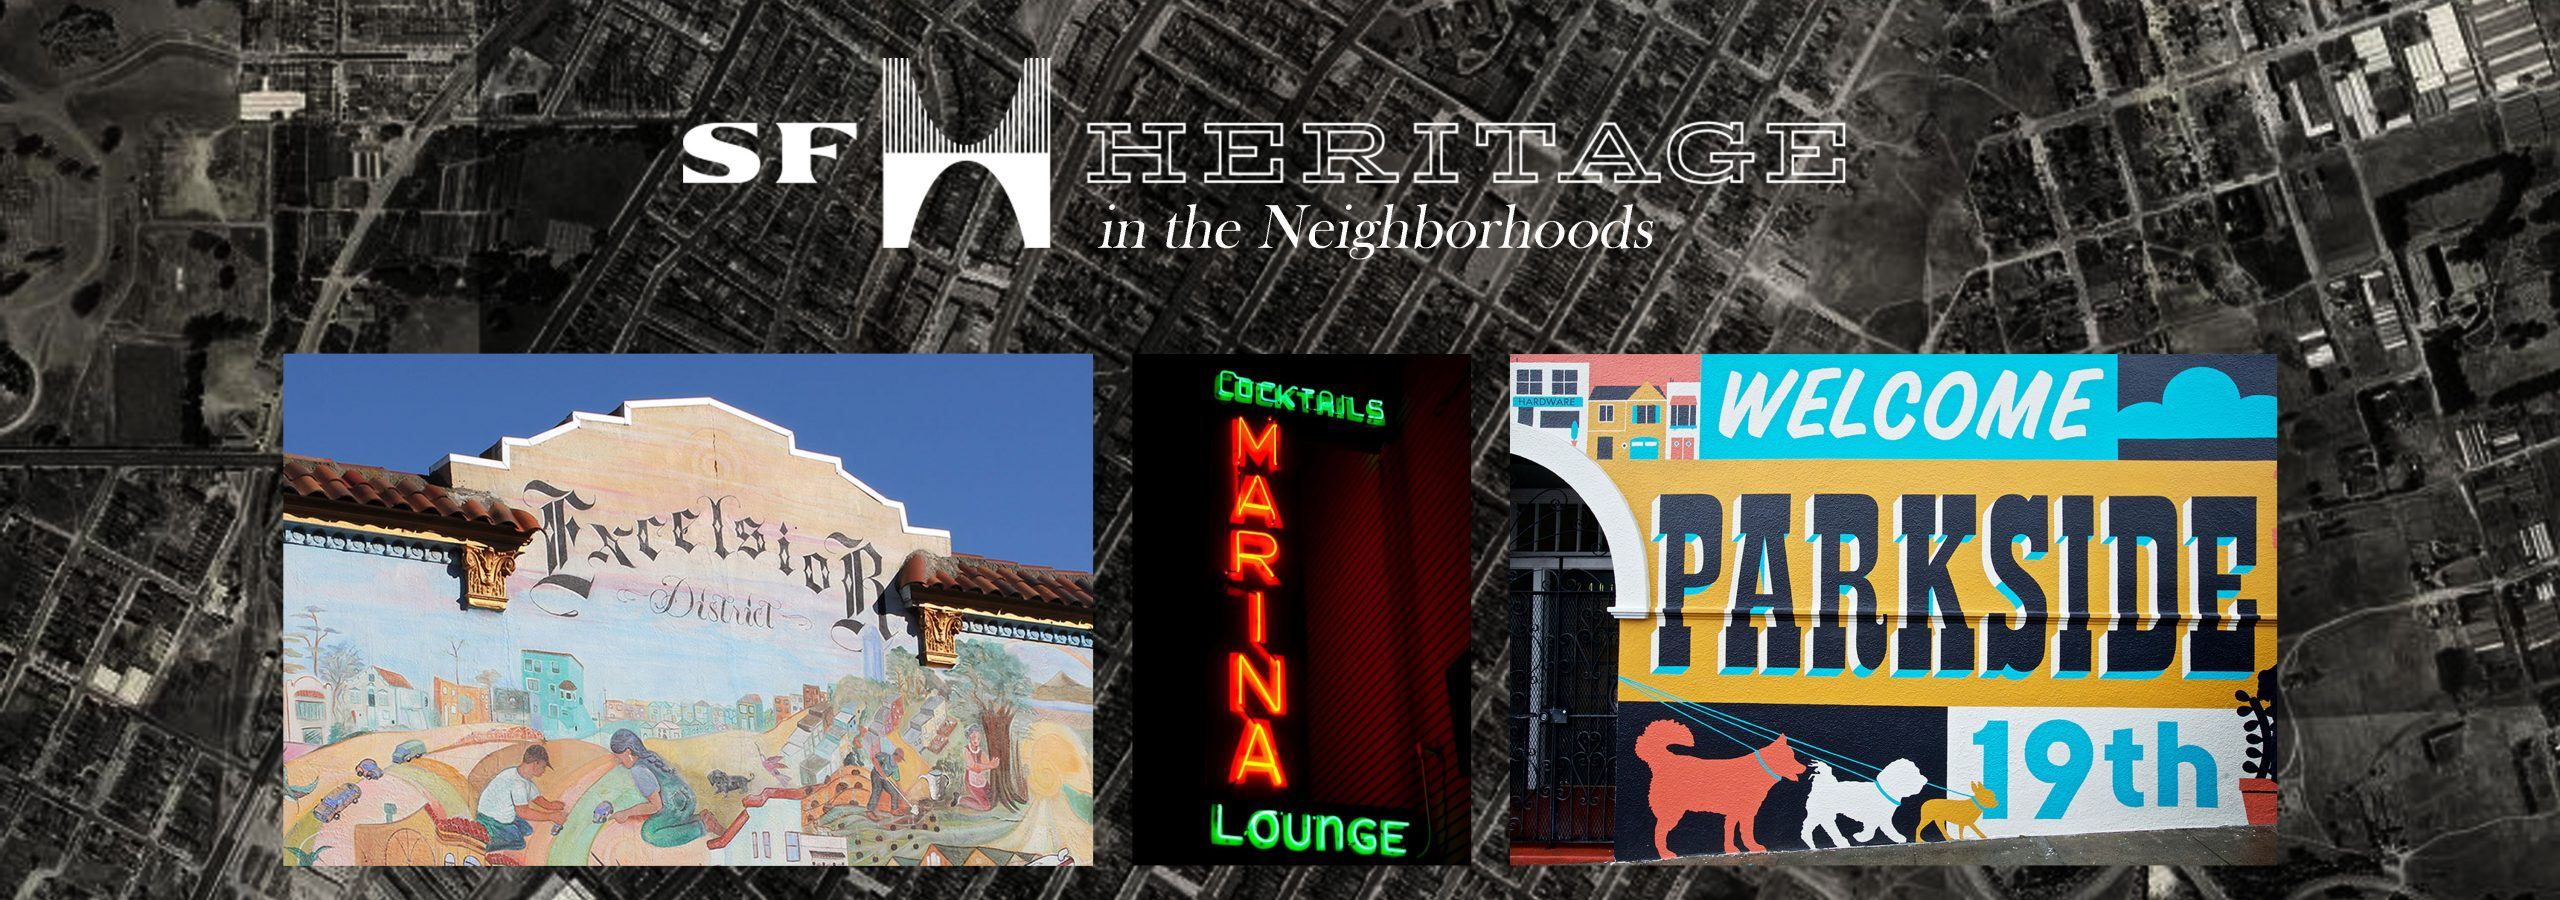 "Heritage in the Neighborhoods text, with three images representing the Excelsior (Colorful mural reading ""Excelsior""), Marina (Neon sign reading ""Marina Lounge""), and Parkside Districts (mural reading ""Parkside)."